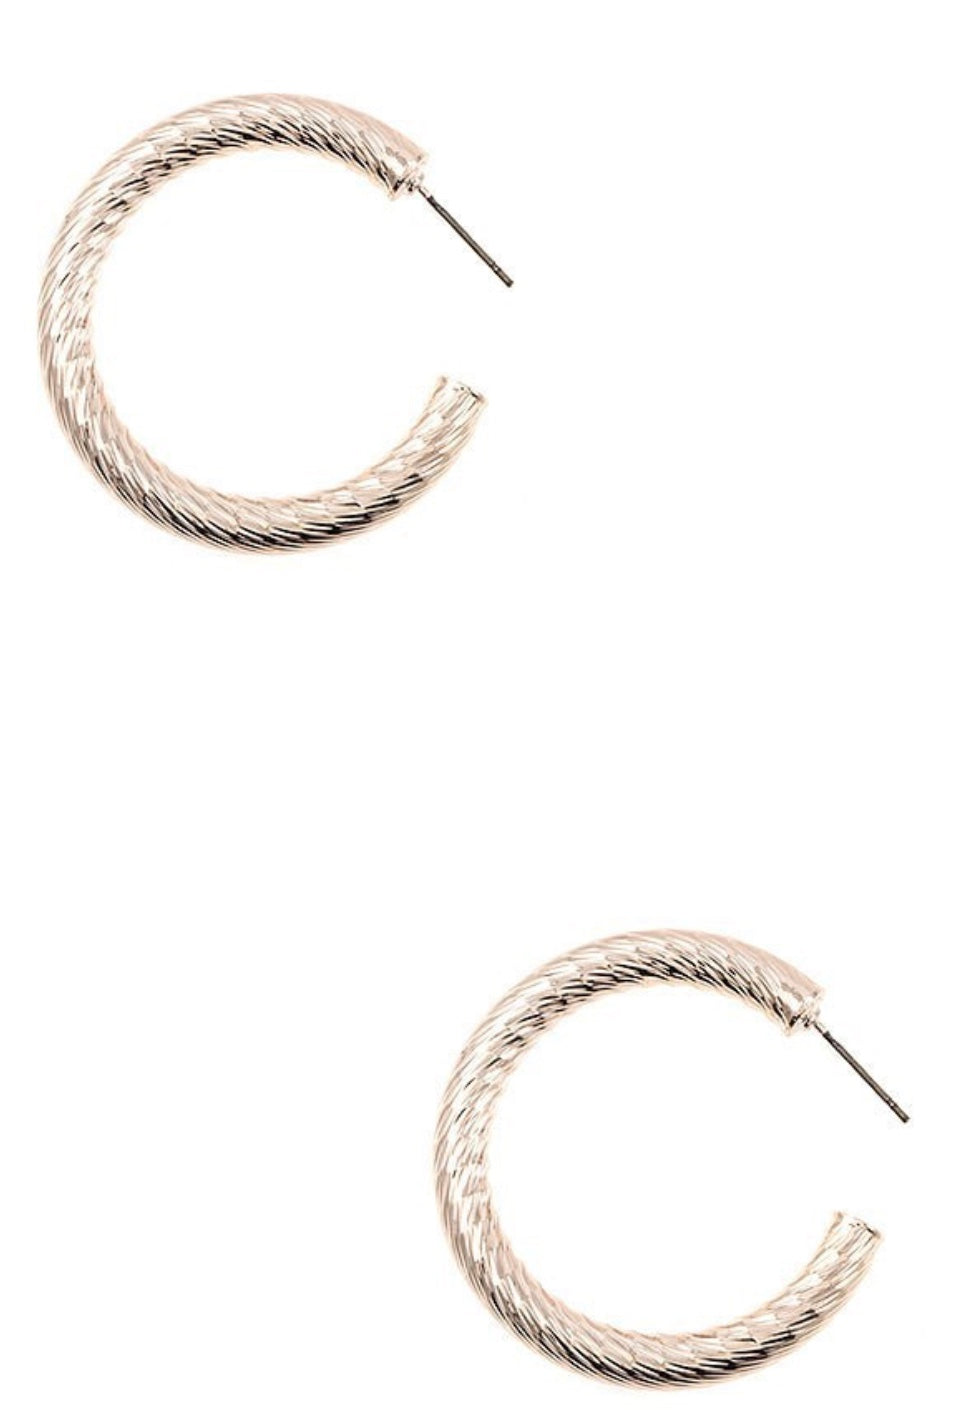 Etched Line Thick Hoop Earrings - Rose Gold